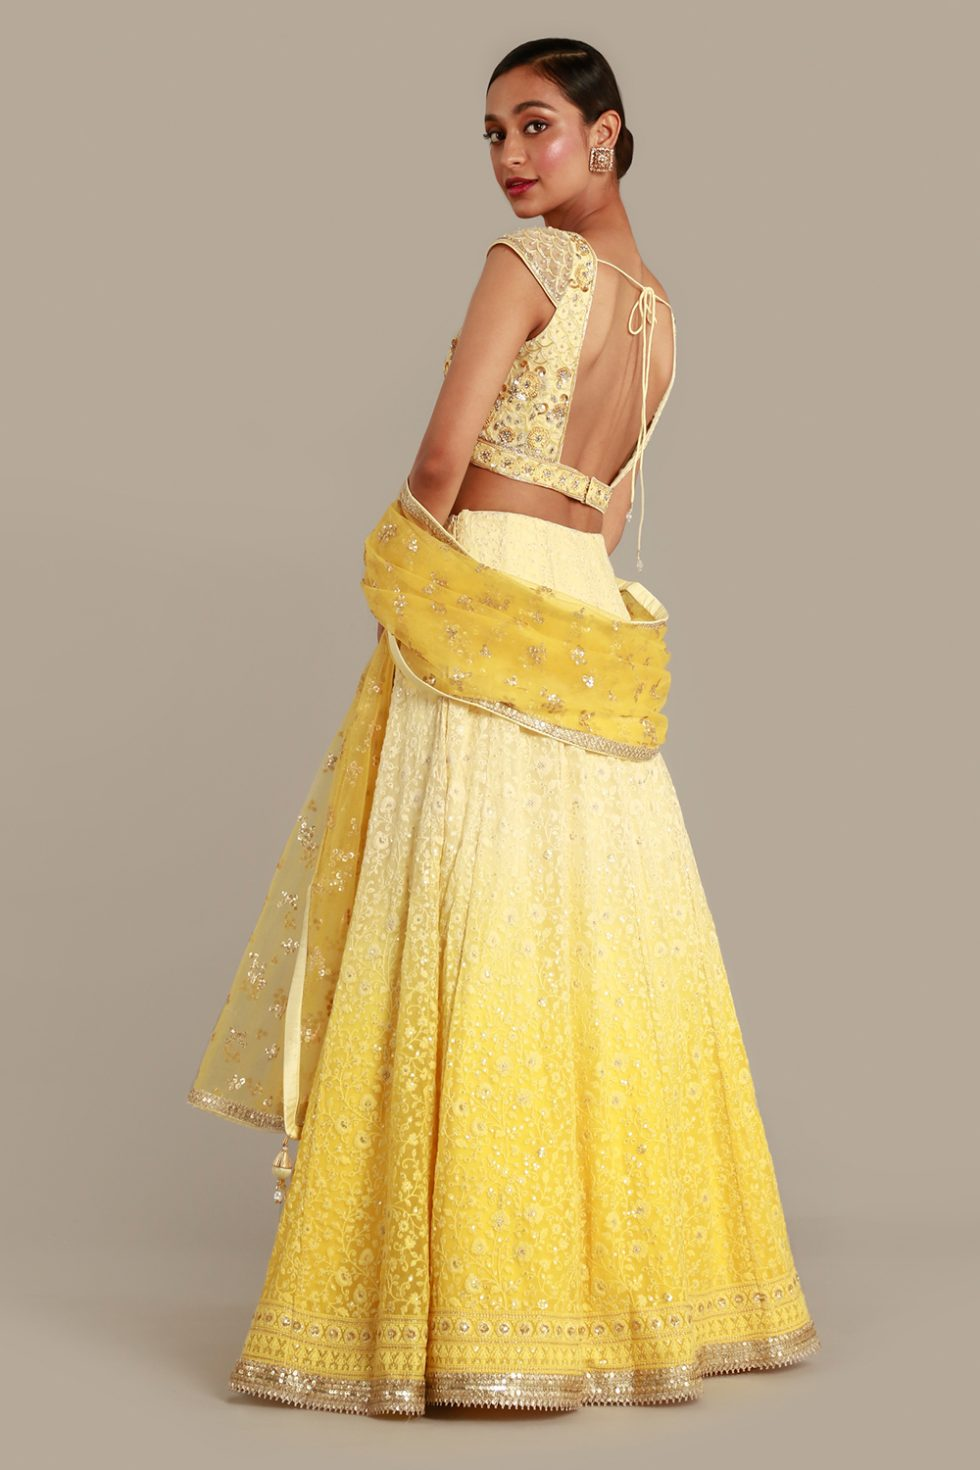 Sunshine yellow ombré lehenga set with thread work, matching choli and dupatta with self, silver and gold details